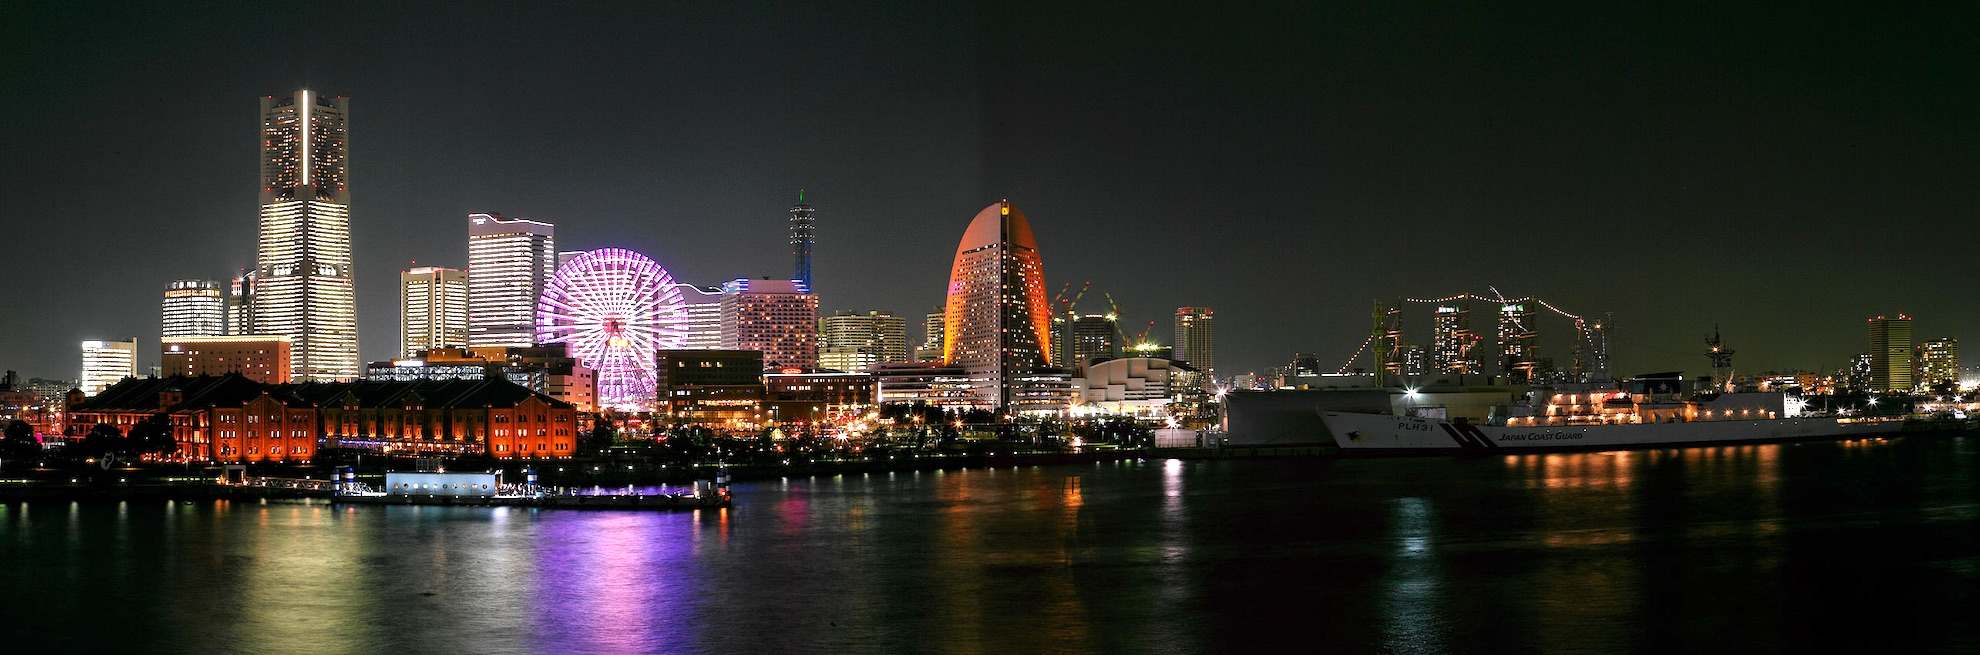 Minatomirai Night View